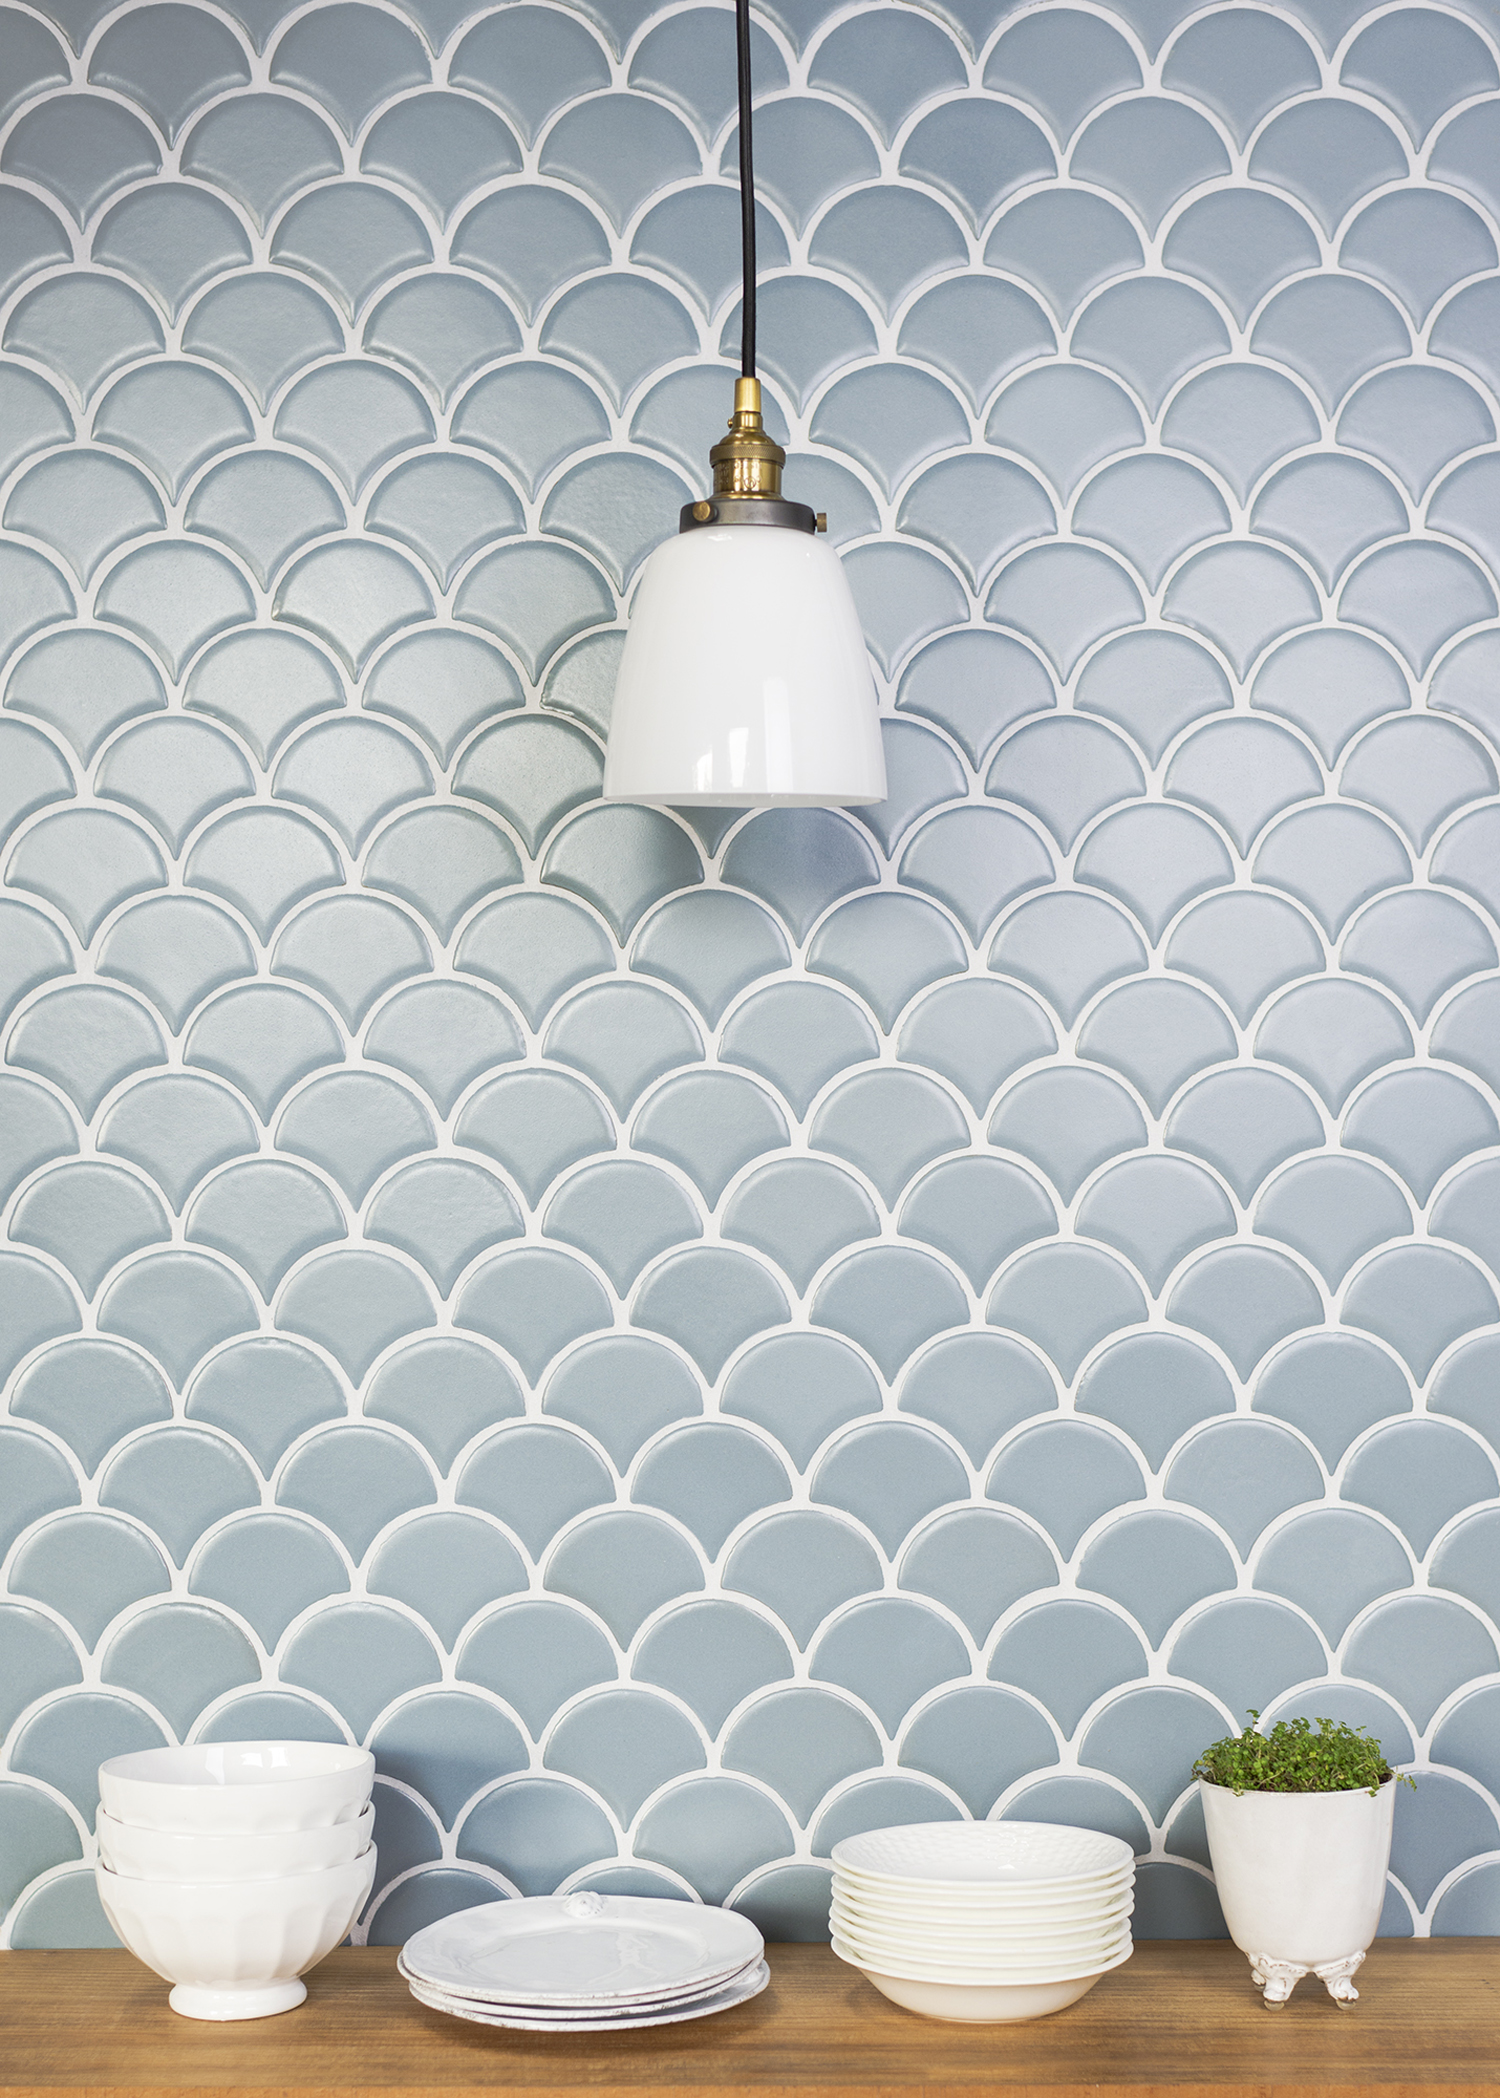 Fish-scale Pattern Backsplash